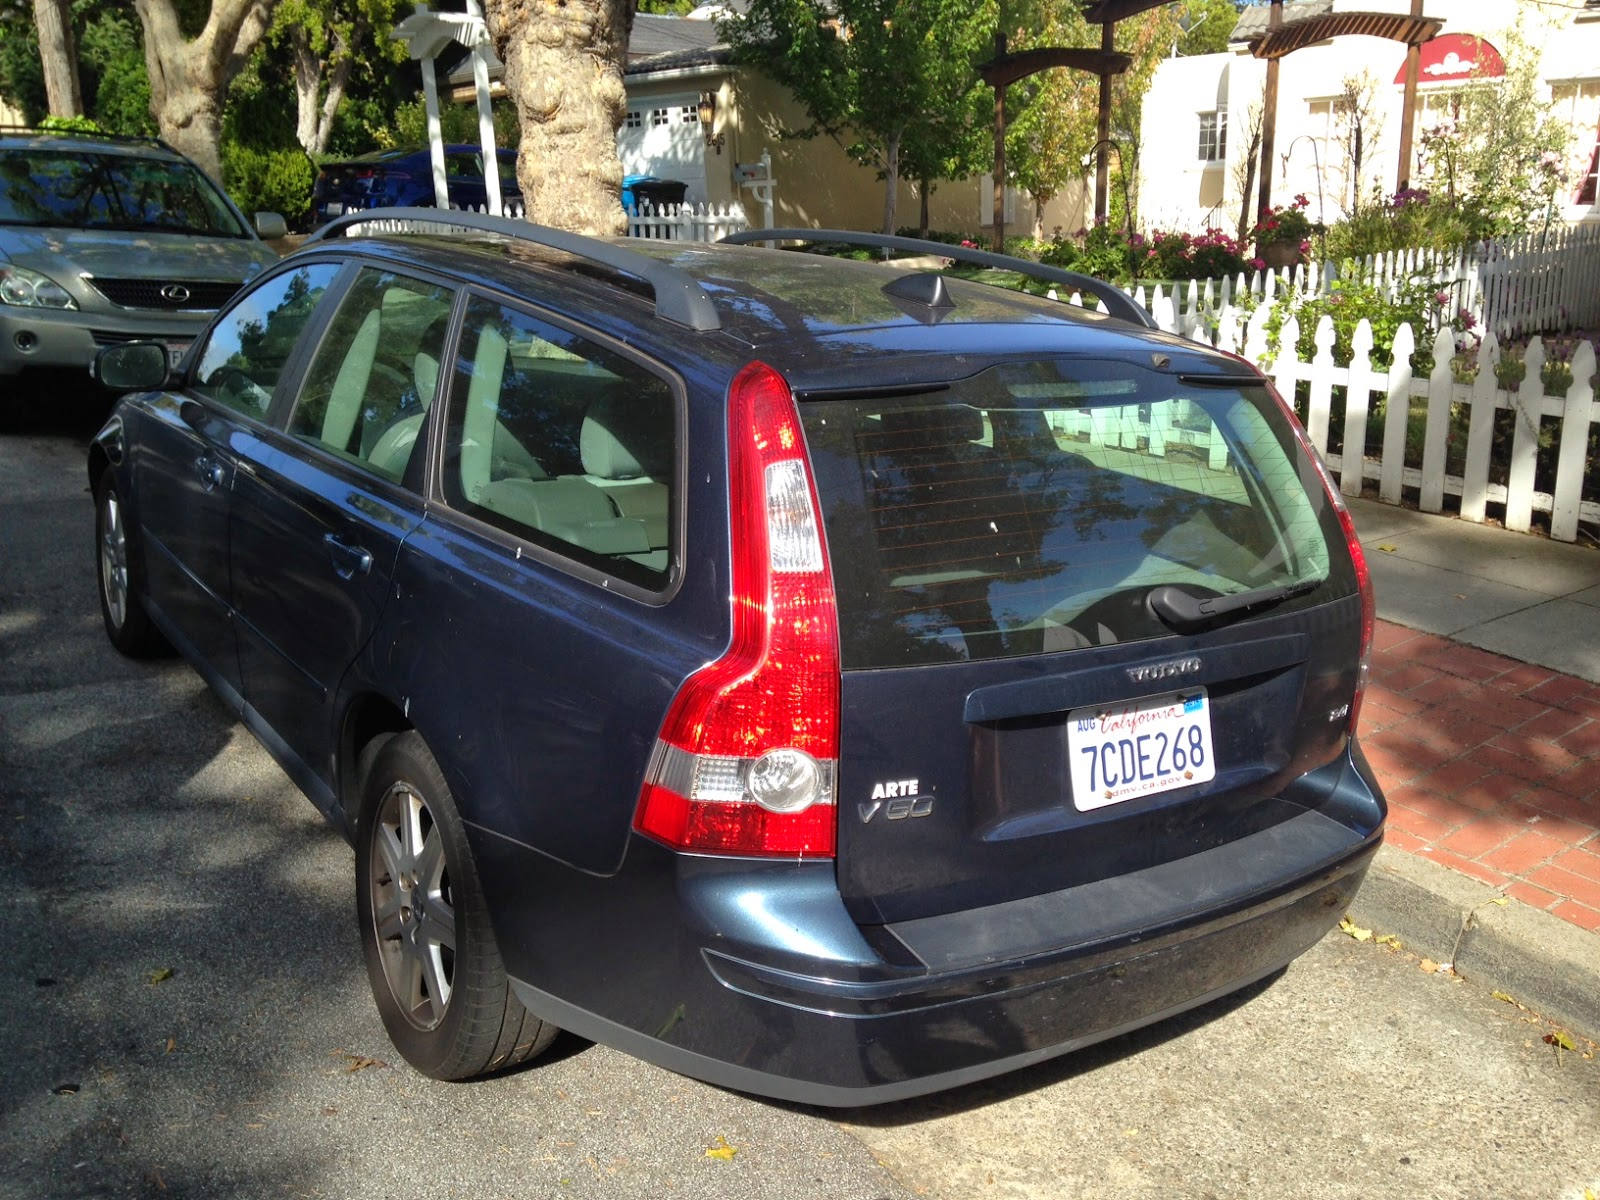 Craigslist Washington Dc Cars For Sale By Owner | 2020 Upcoming Car